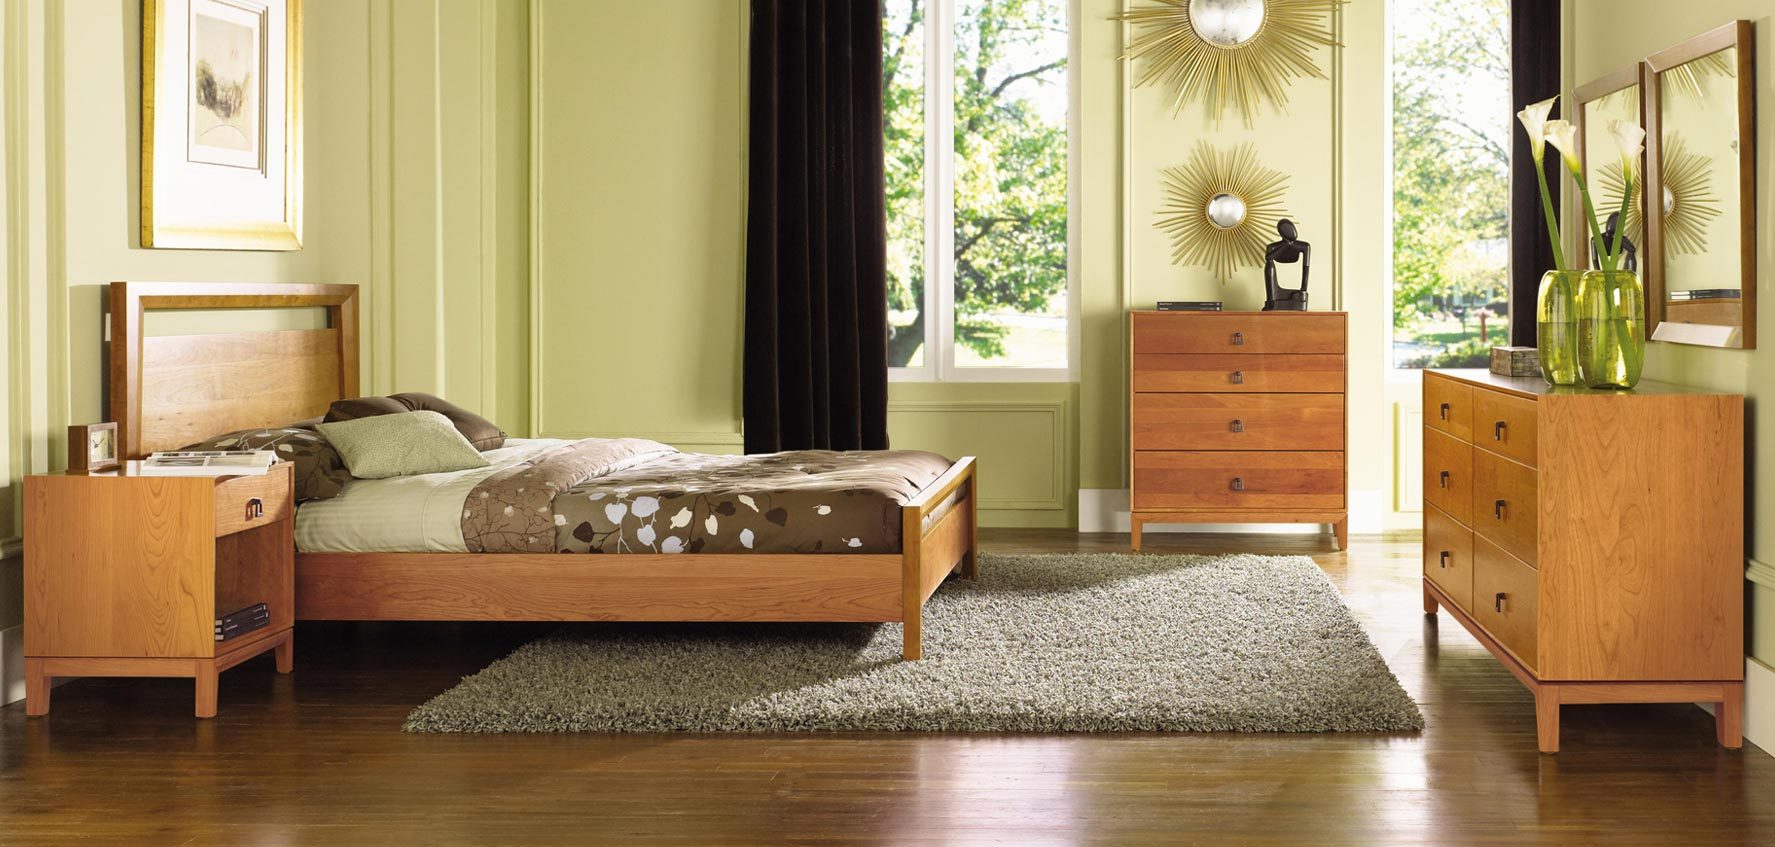 Mansfield Bedroom Furniture By Copeland Vermont Woods Studios - Copeland bedroom furniture